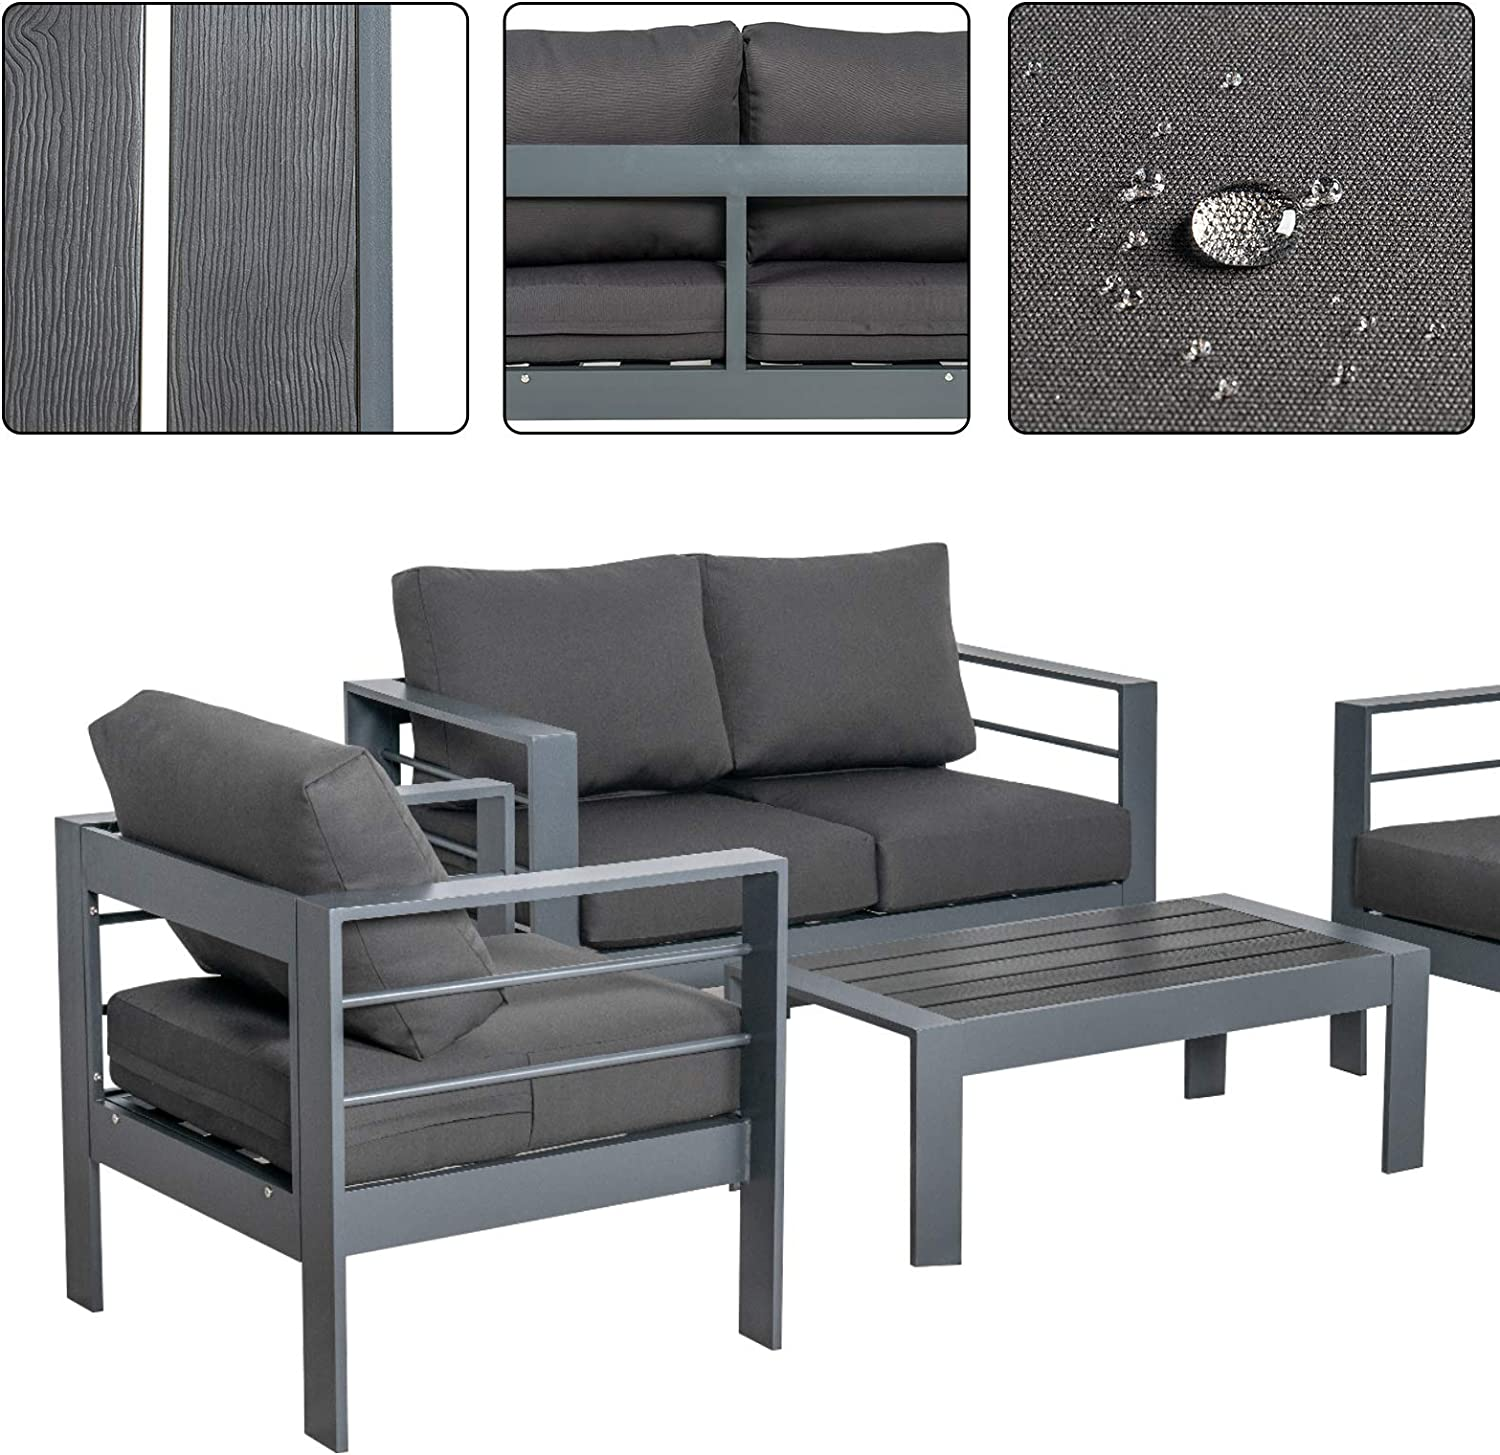 Buy Scurrty Outdoor Patio Furniture Sets Clearance Aluminum Patio ...